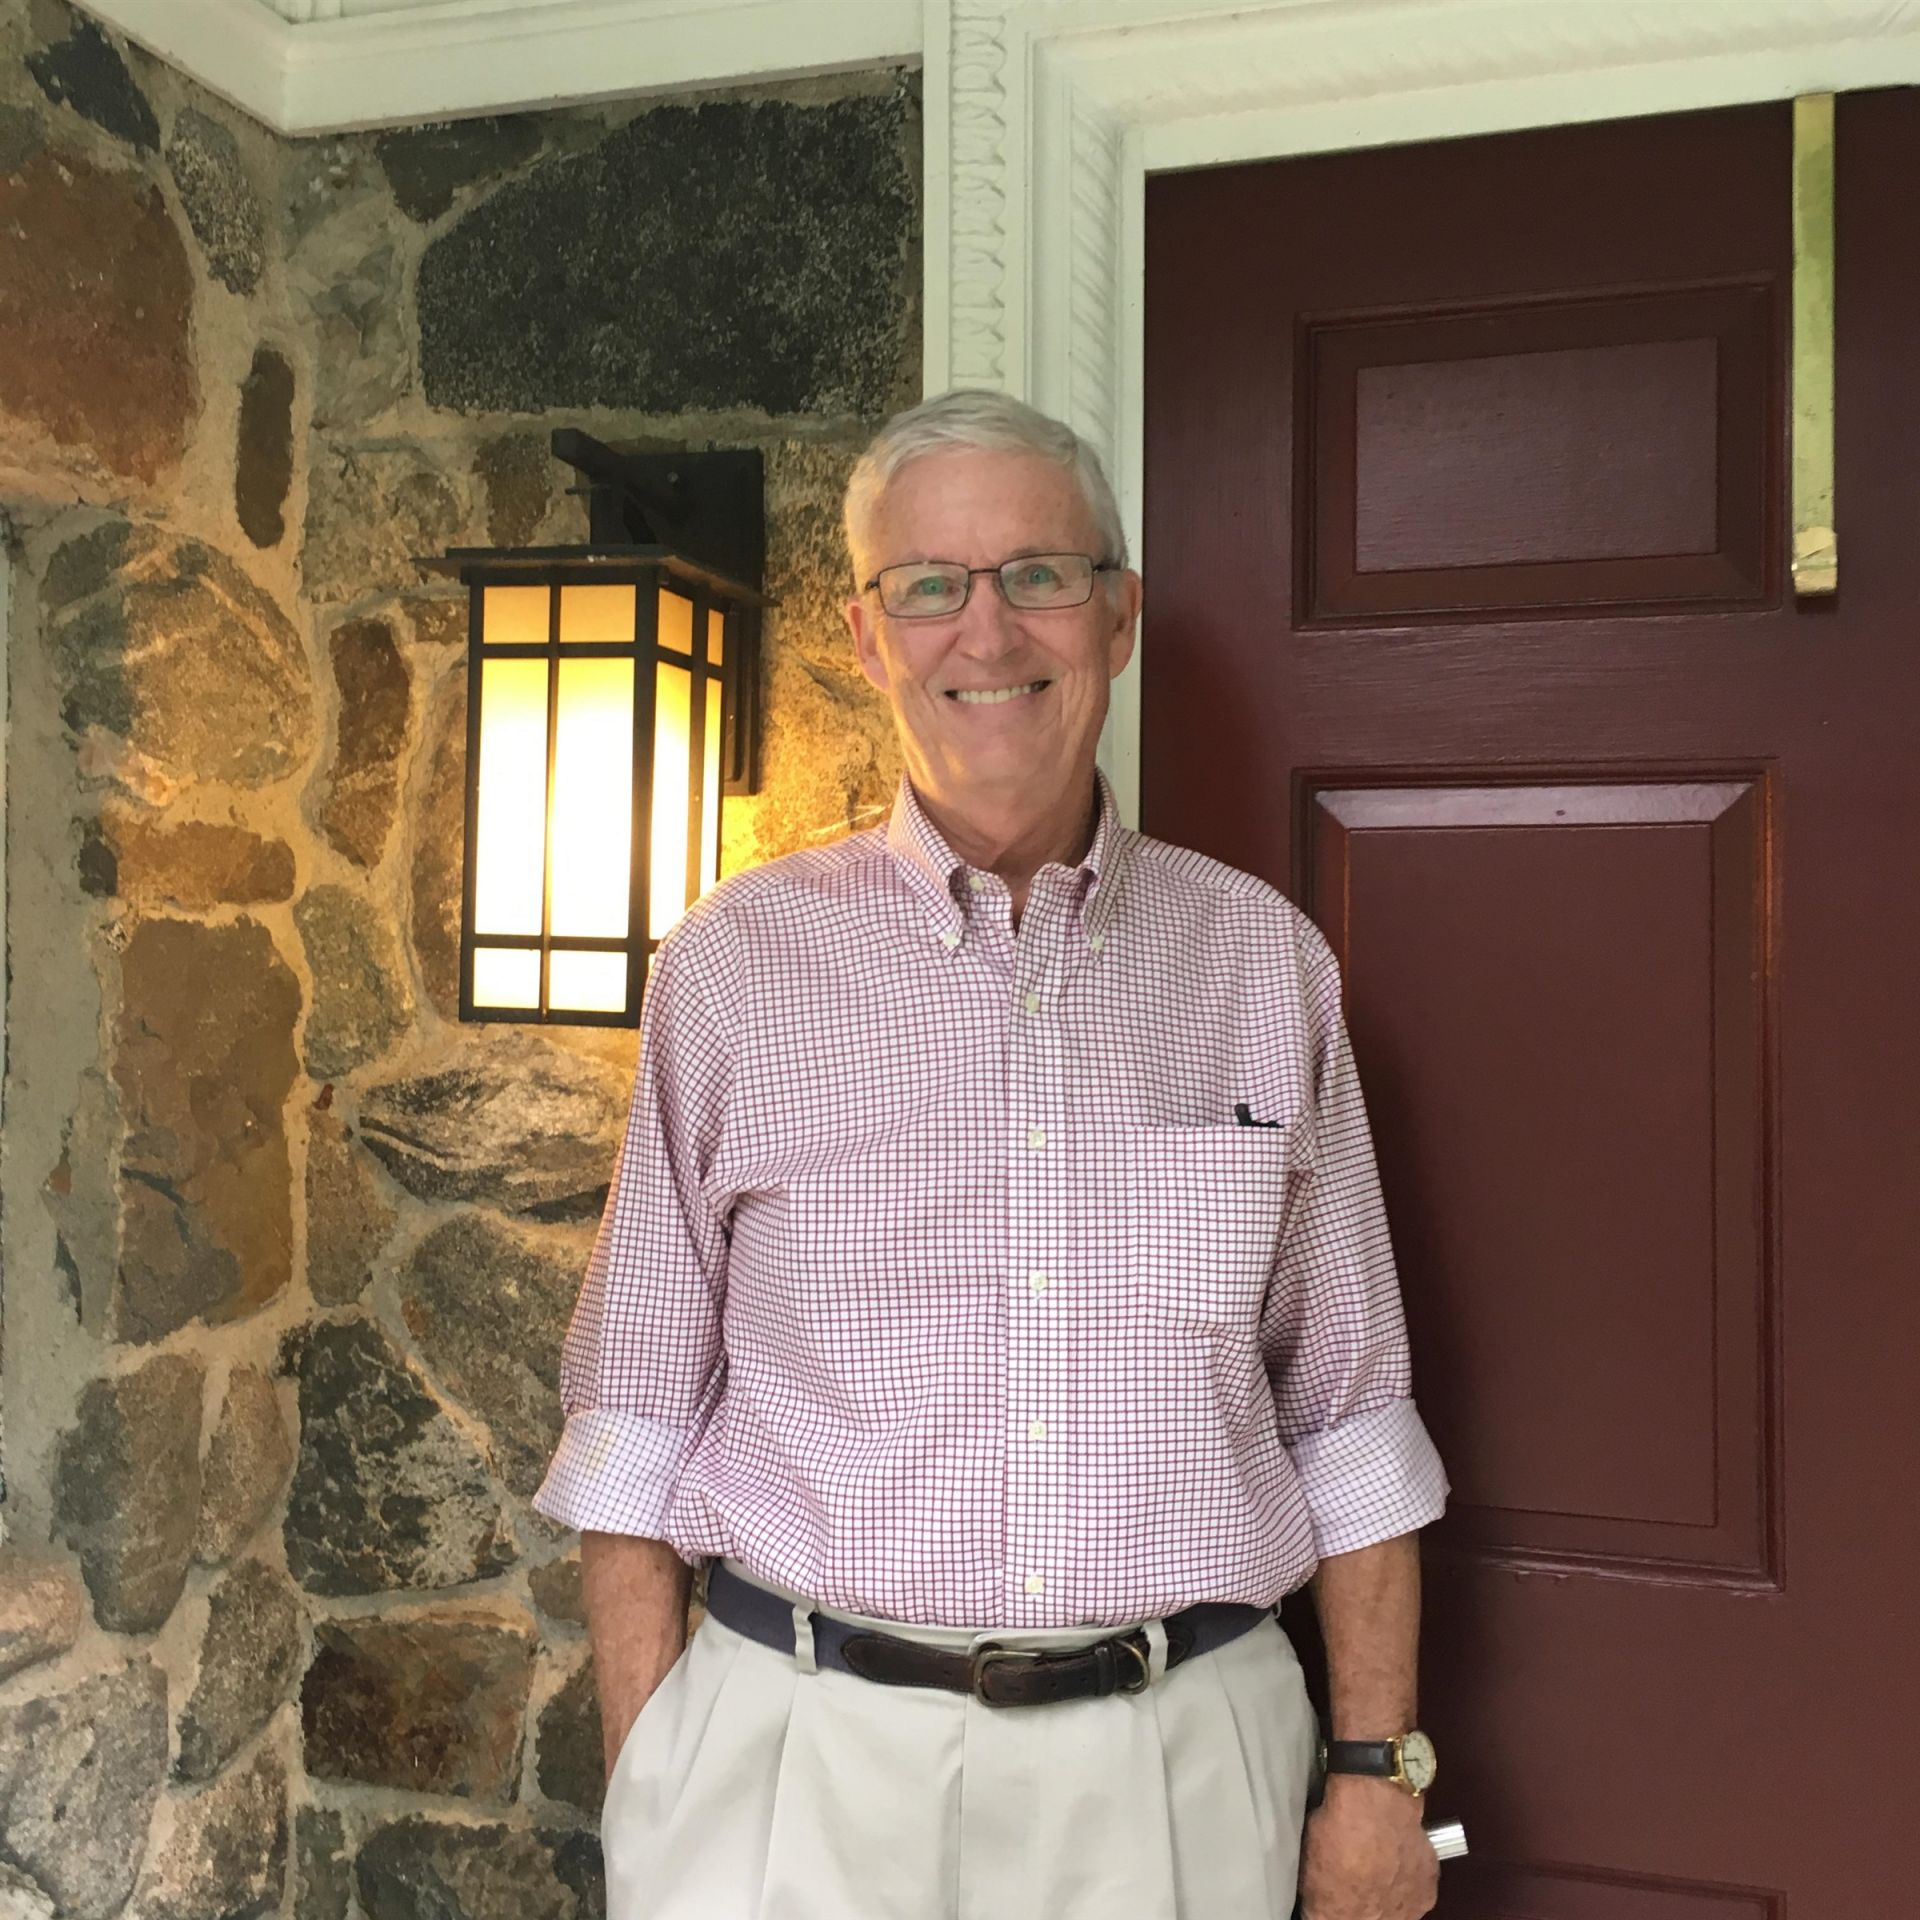 Bill Cornish '68 visits Alumni House on September 20, 2018.